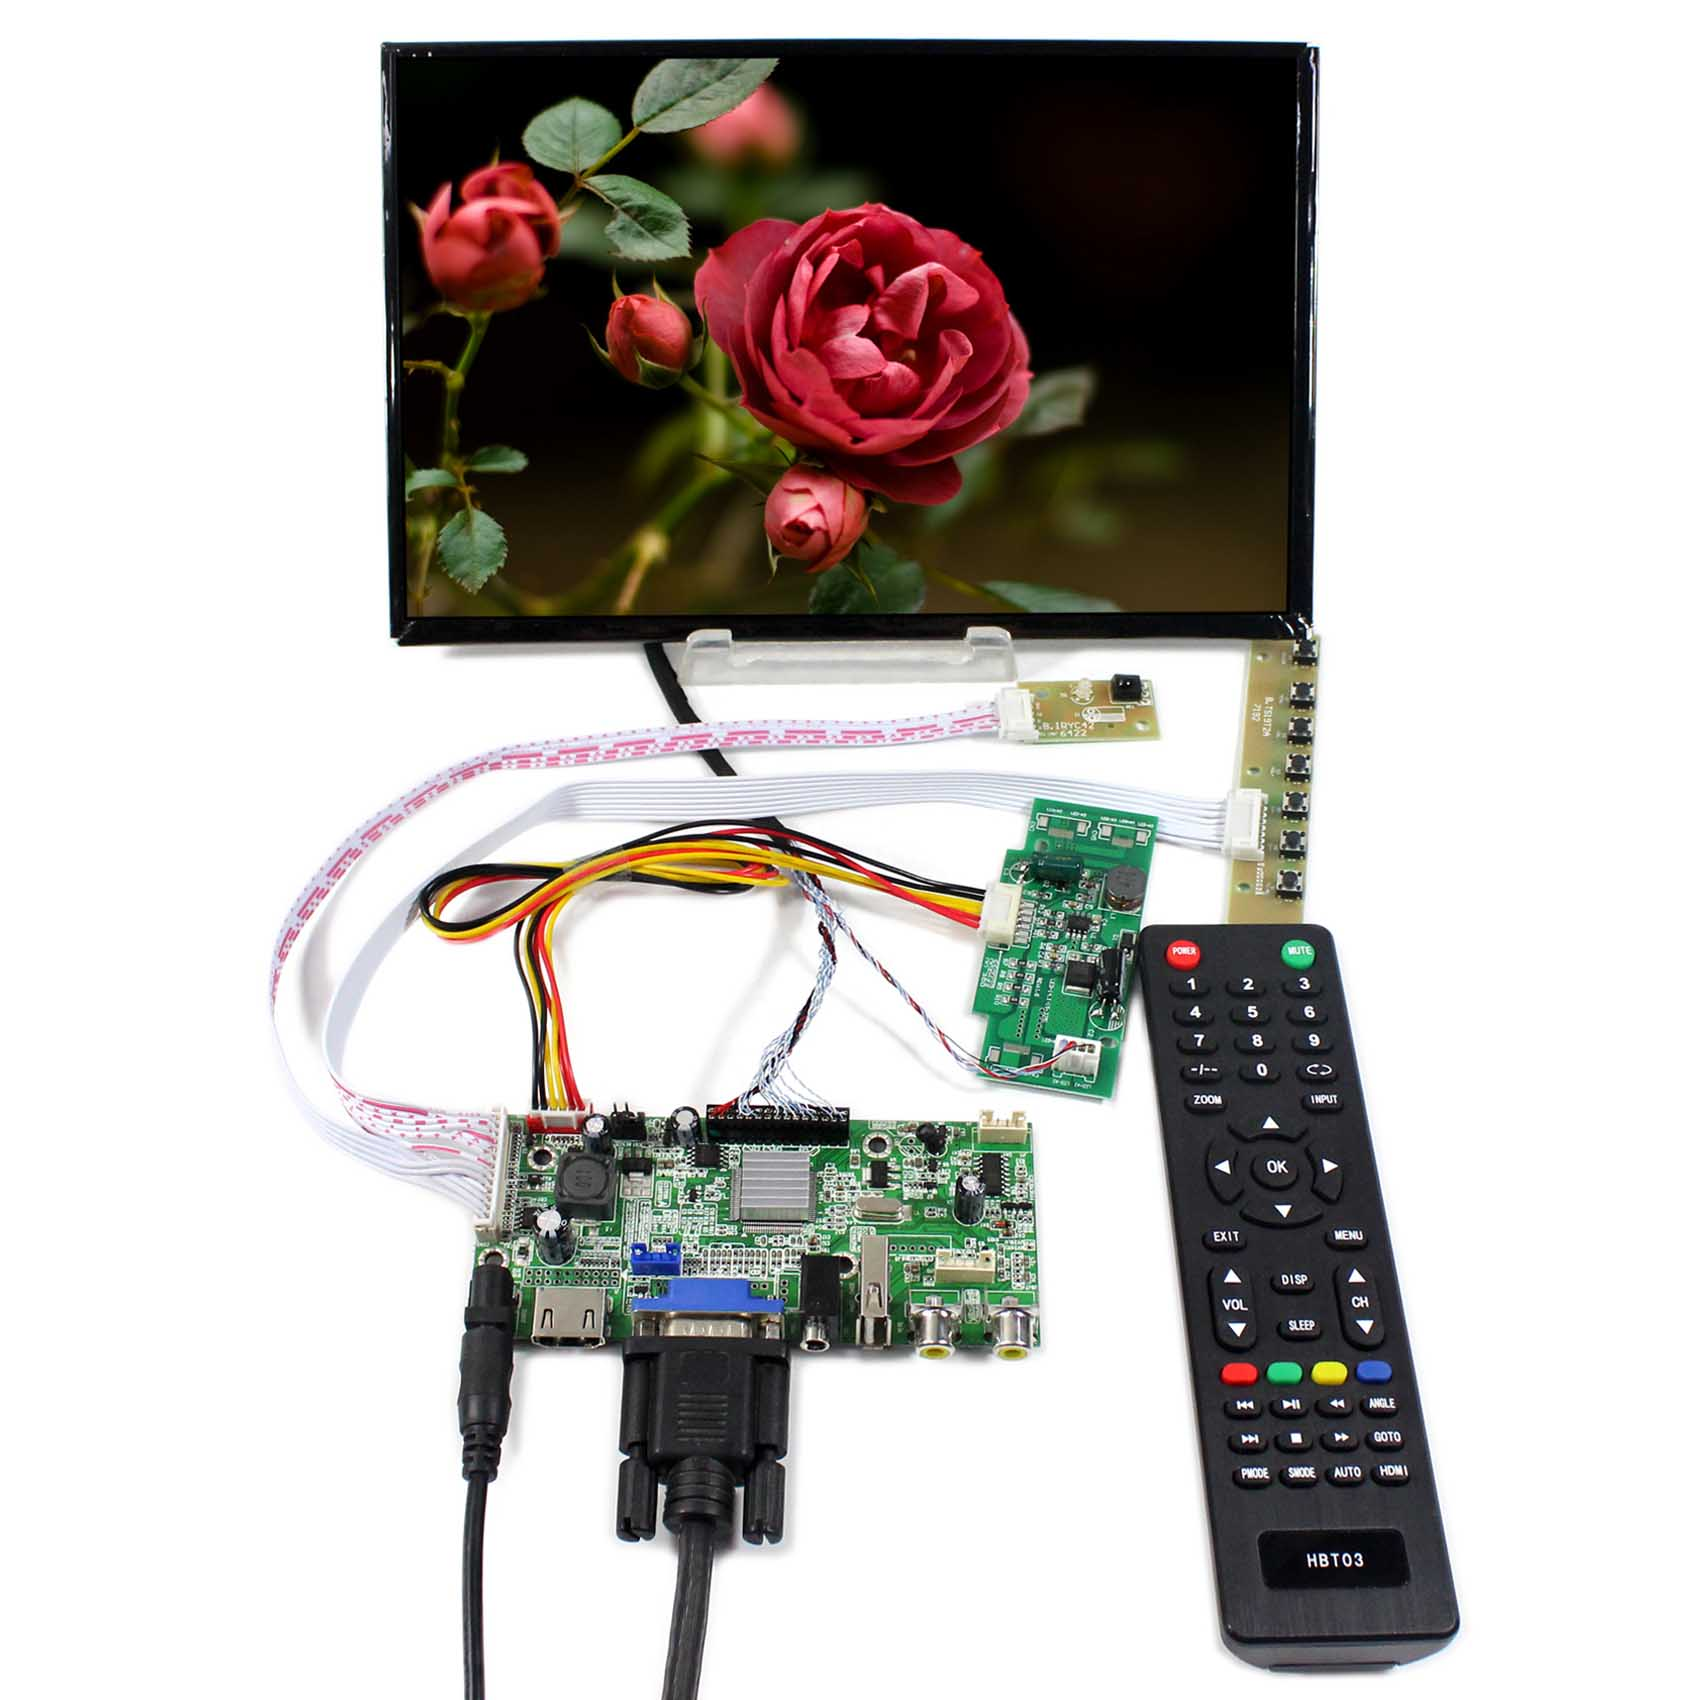 B101UAN01 Backlight WLED 10.1inch LCD Screen VGA AV HDMI  USB LCD Controller Board B101UAT02 1920X1200  ResolutionB101UAN01 Backlight WLED 10.1inch LCD Screen VGA AV HDMI  USB LCD Controller Board B101UAT02 1920X1200  Resolution